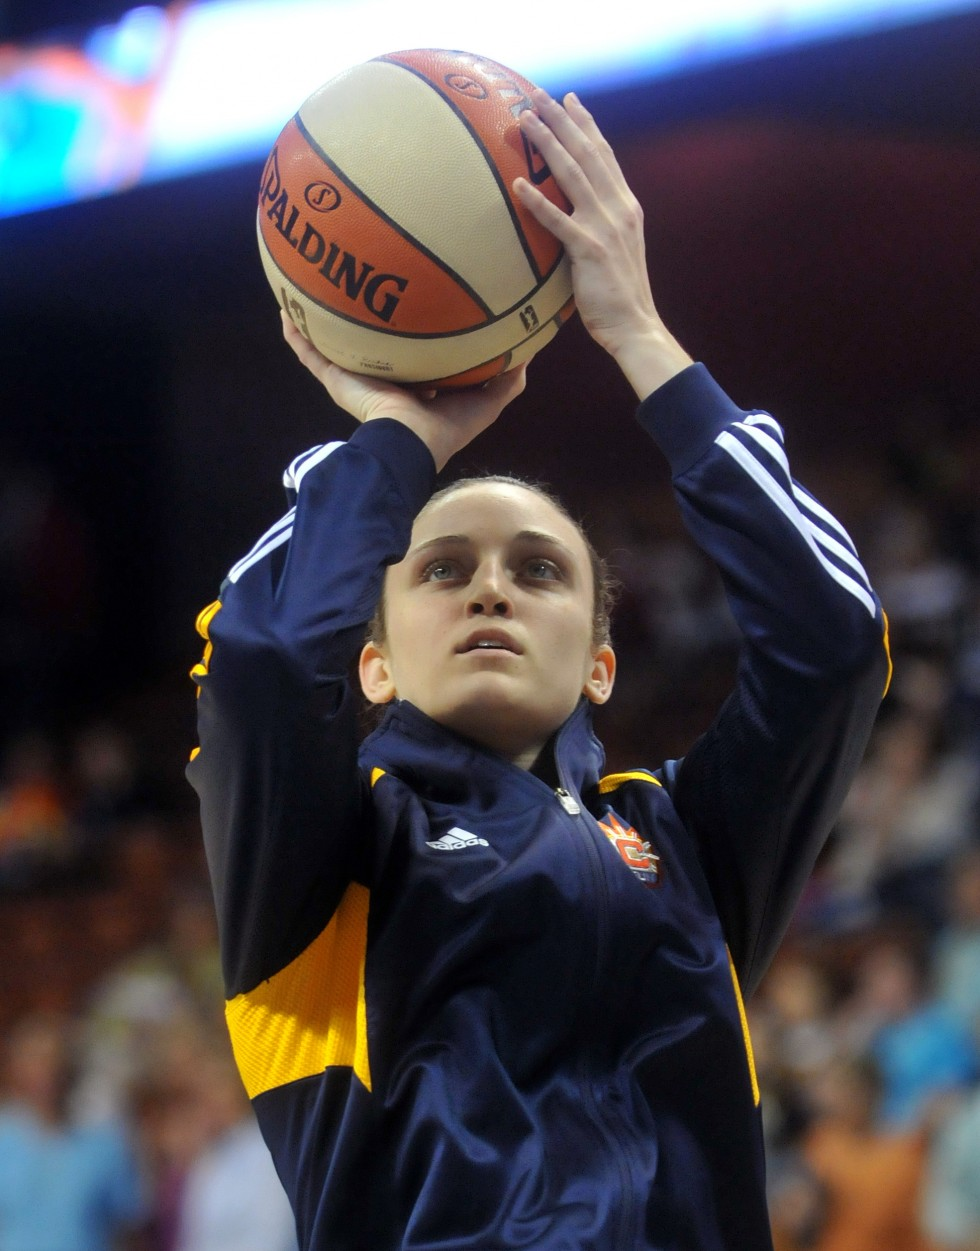 Former UConn standout and Connecticut Sun rookie Kelly Faris warms up before her first professional game against the New York Liberty at Mohegan Sun Arena Saturday night.  Connecticut Sun forward Mistie Bass, Kelly Faris and New York Liberty's Cappie Pondexter in action at the Sun season opener at Mohegan Sun Arena Saturday night. Photo by BRAD HORRIGAN | bhorrigan@courant.com